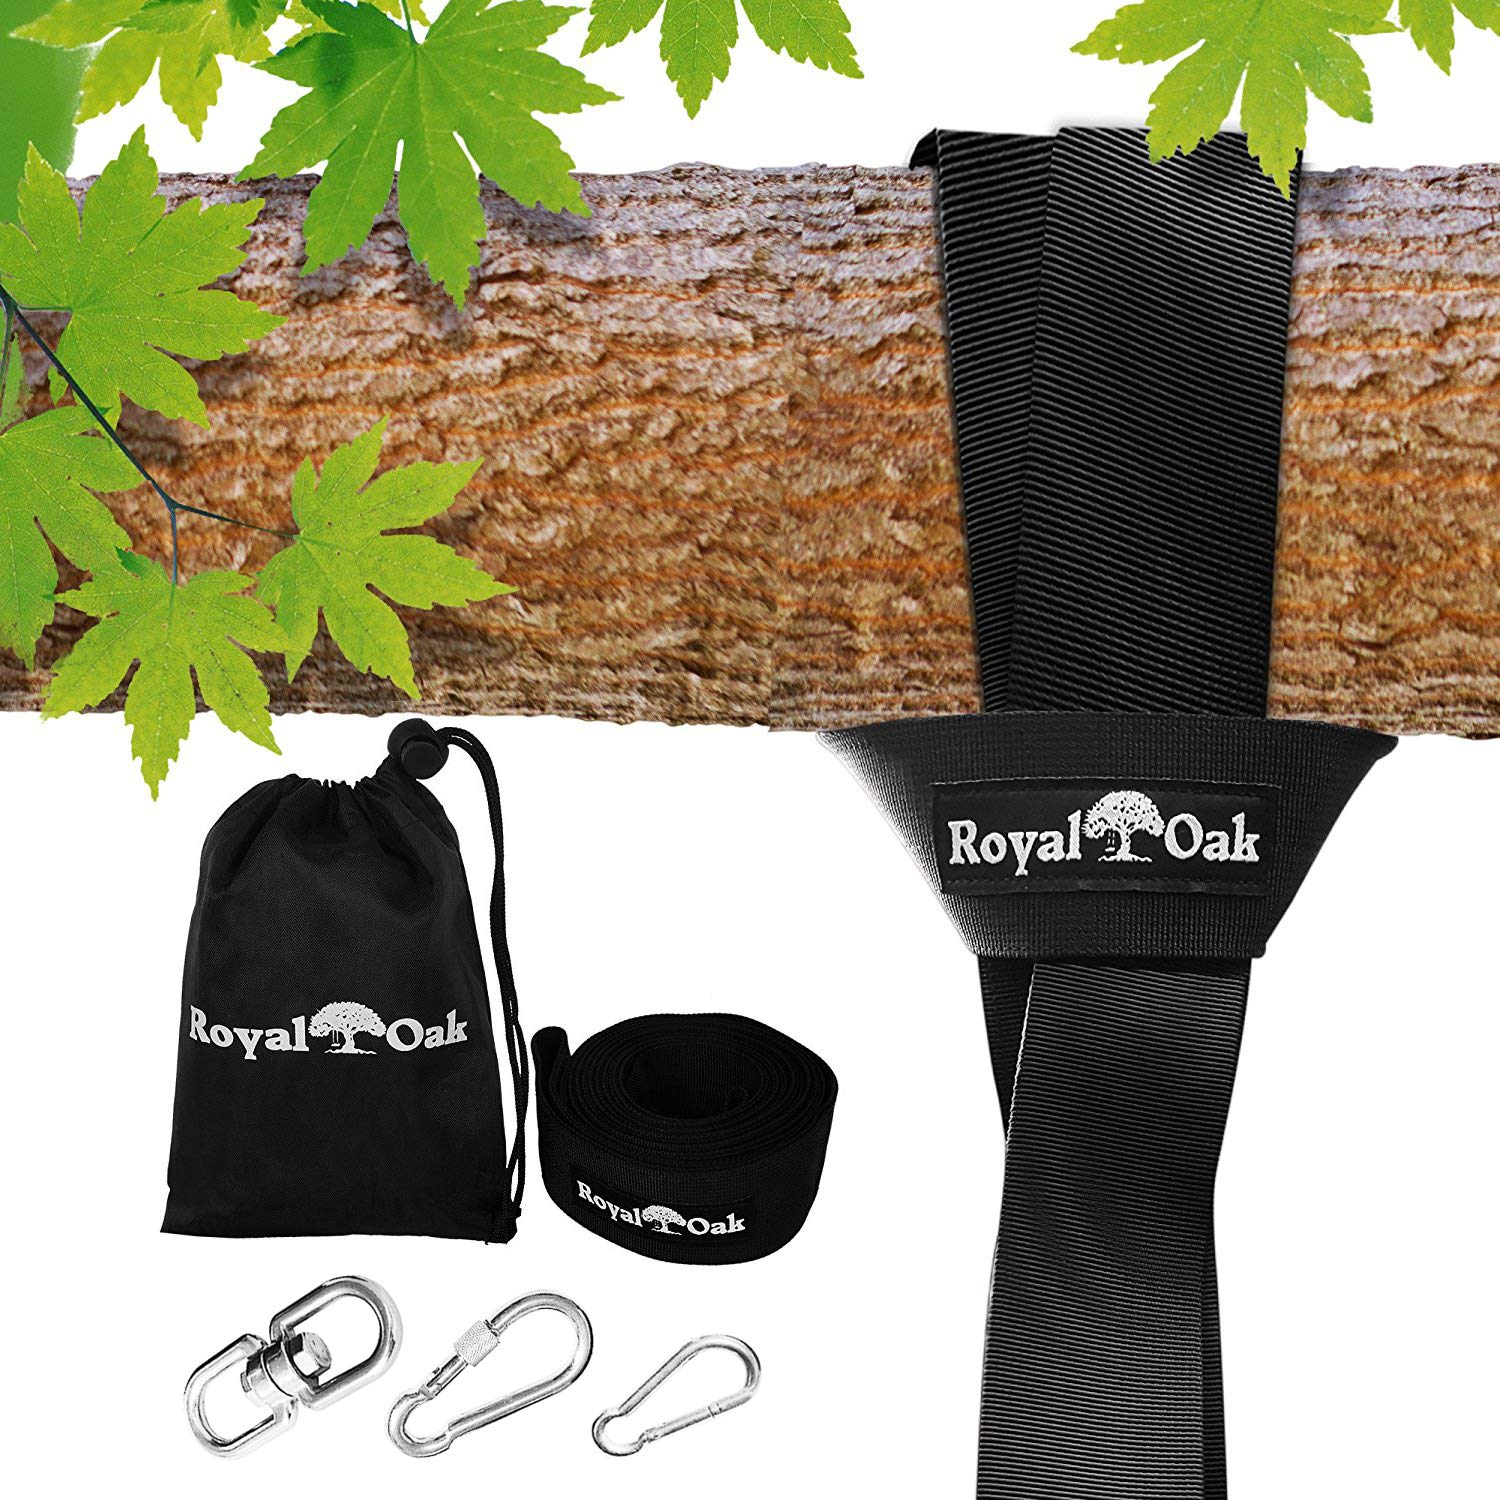 EASY HANG (4FT) TREE SWING STRAP X1 - Holds 2200lbs. - Heavy Duty Carabiner - Bonus Spinner - Perfect for Tire and Saucer Swings - 100% Waterproof - Easy Picture Instructions - Carry Bag Included! by Royal Oak